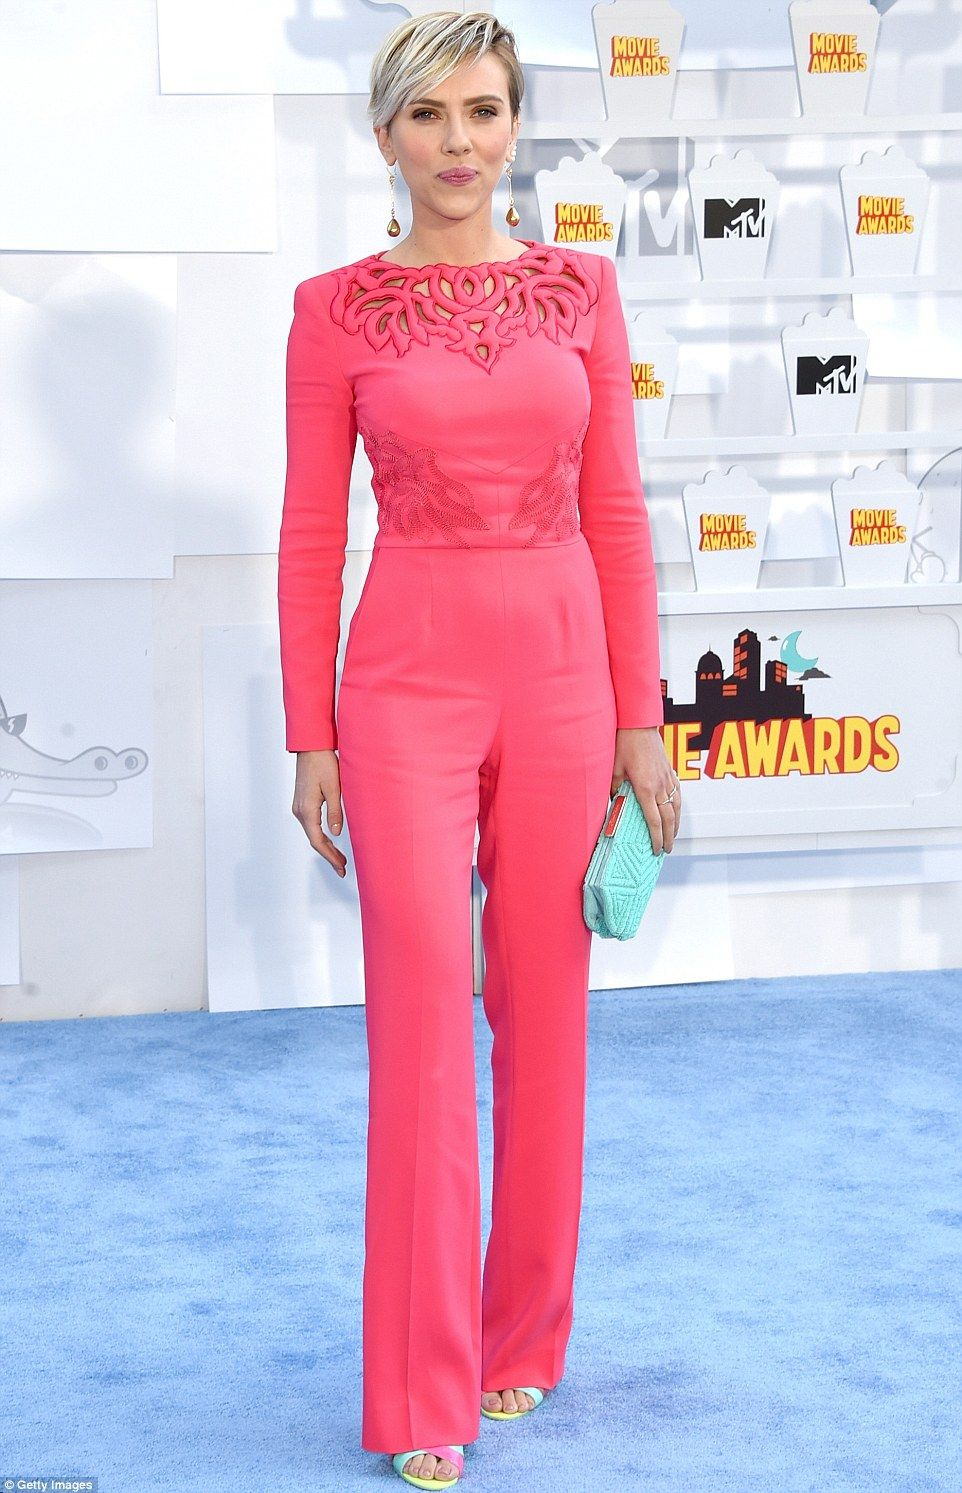 762c0568954 ... MTV Movie Awards. Nice color  The Avengers star stood out in a coral  jumpsuit that hugged her curves.